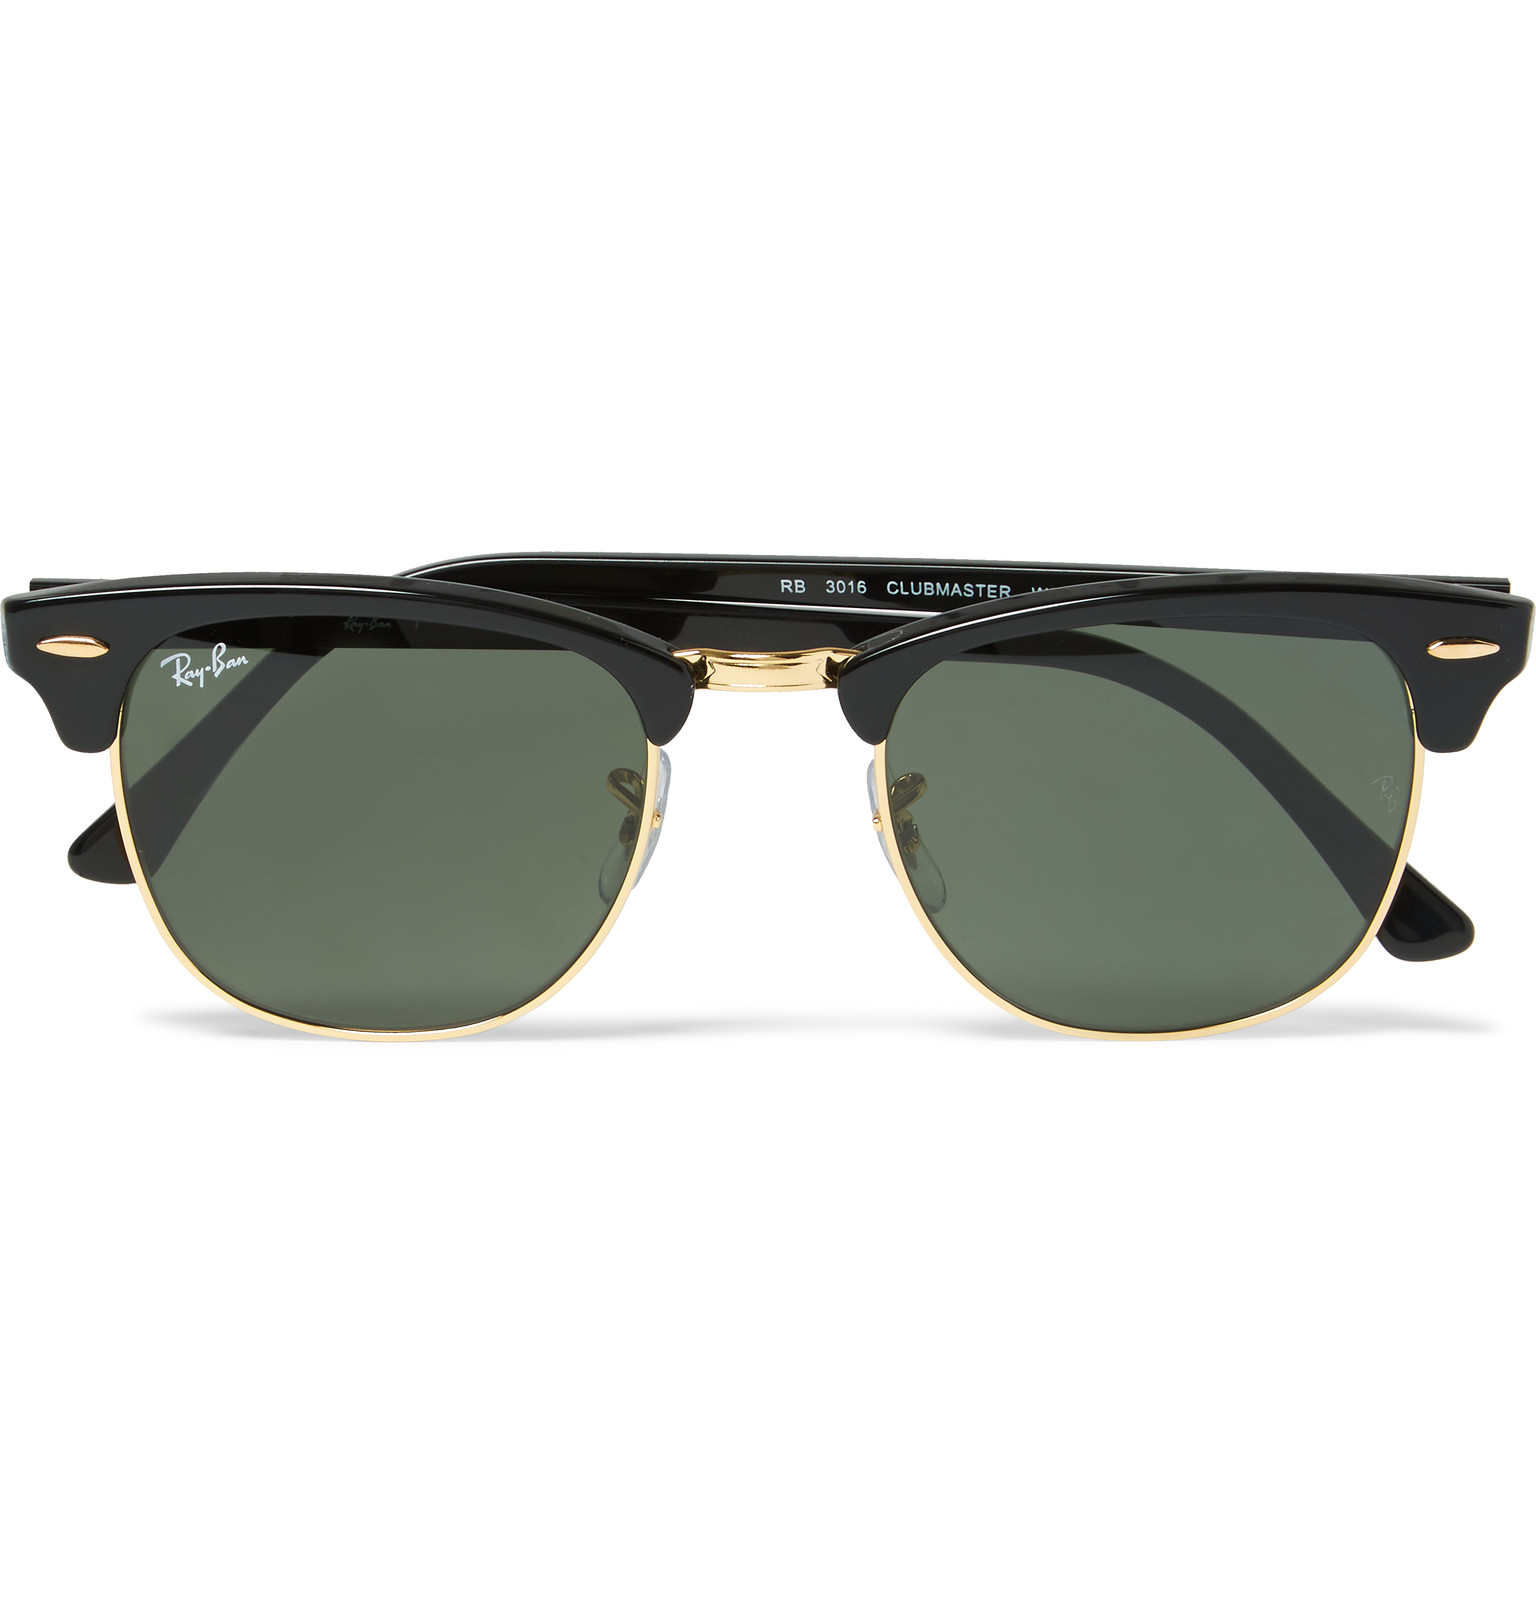 Ray Ban Rb3016 Clubmaster Sunglasses  gold and archives glasses